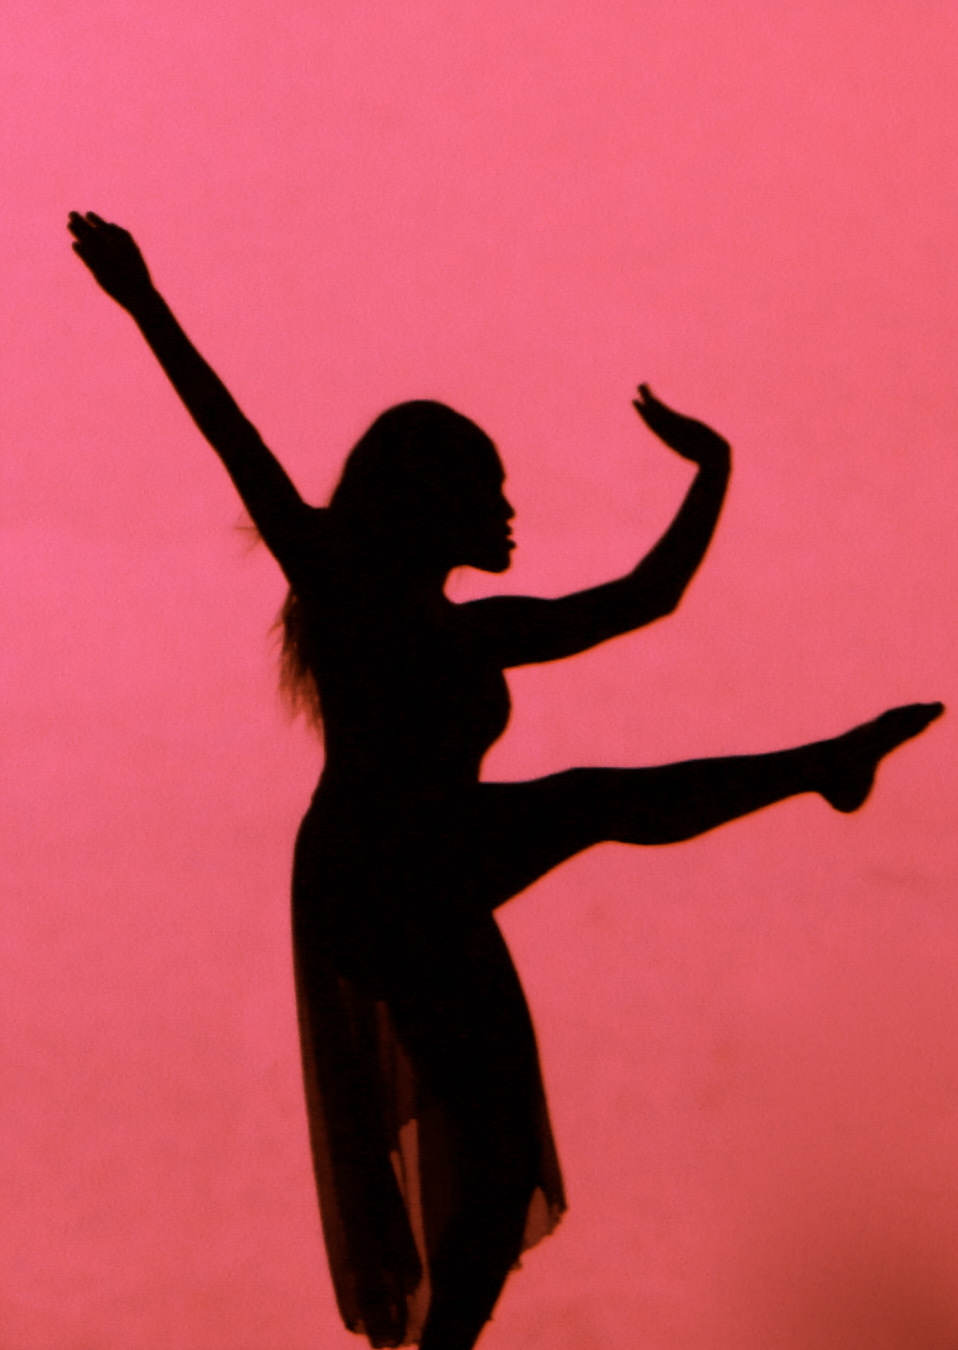 dancer silhouette 2